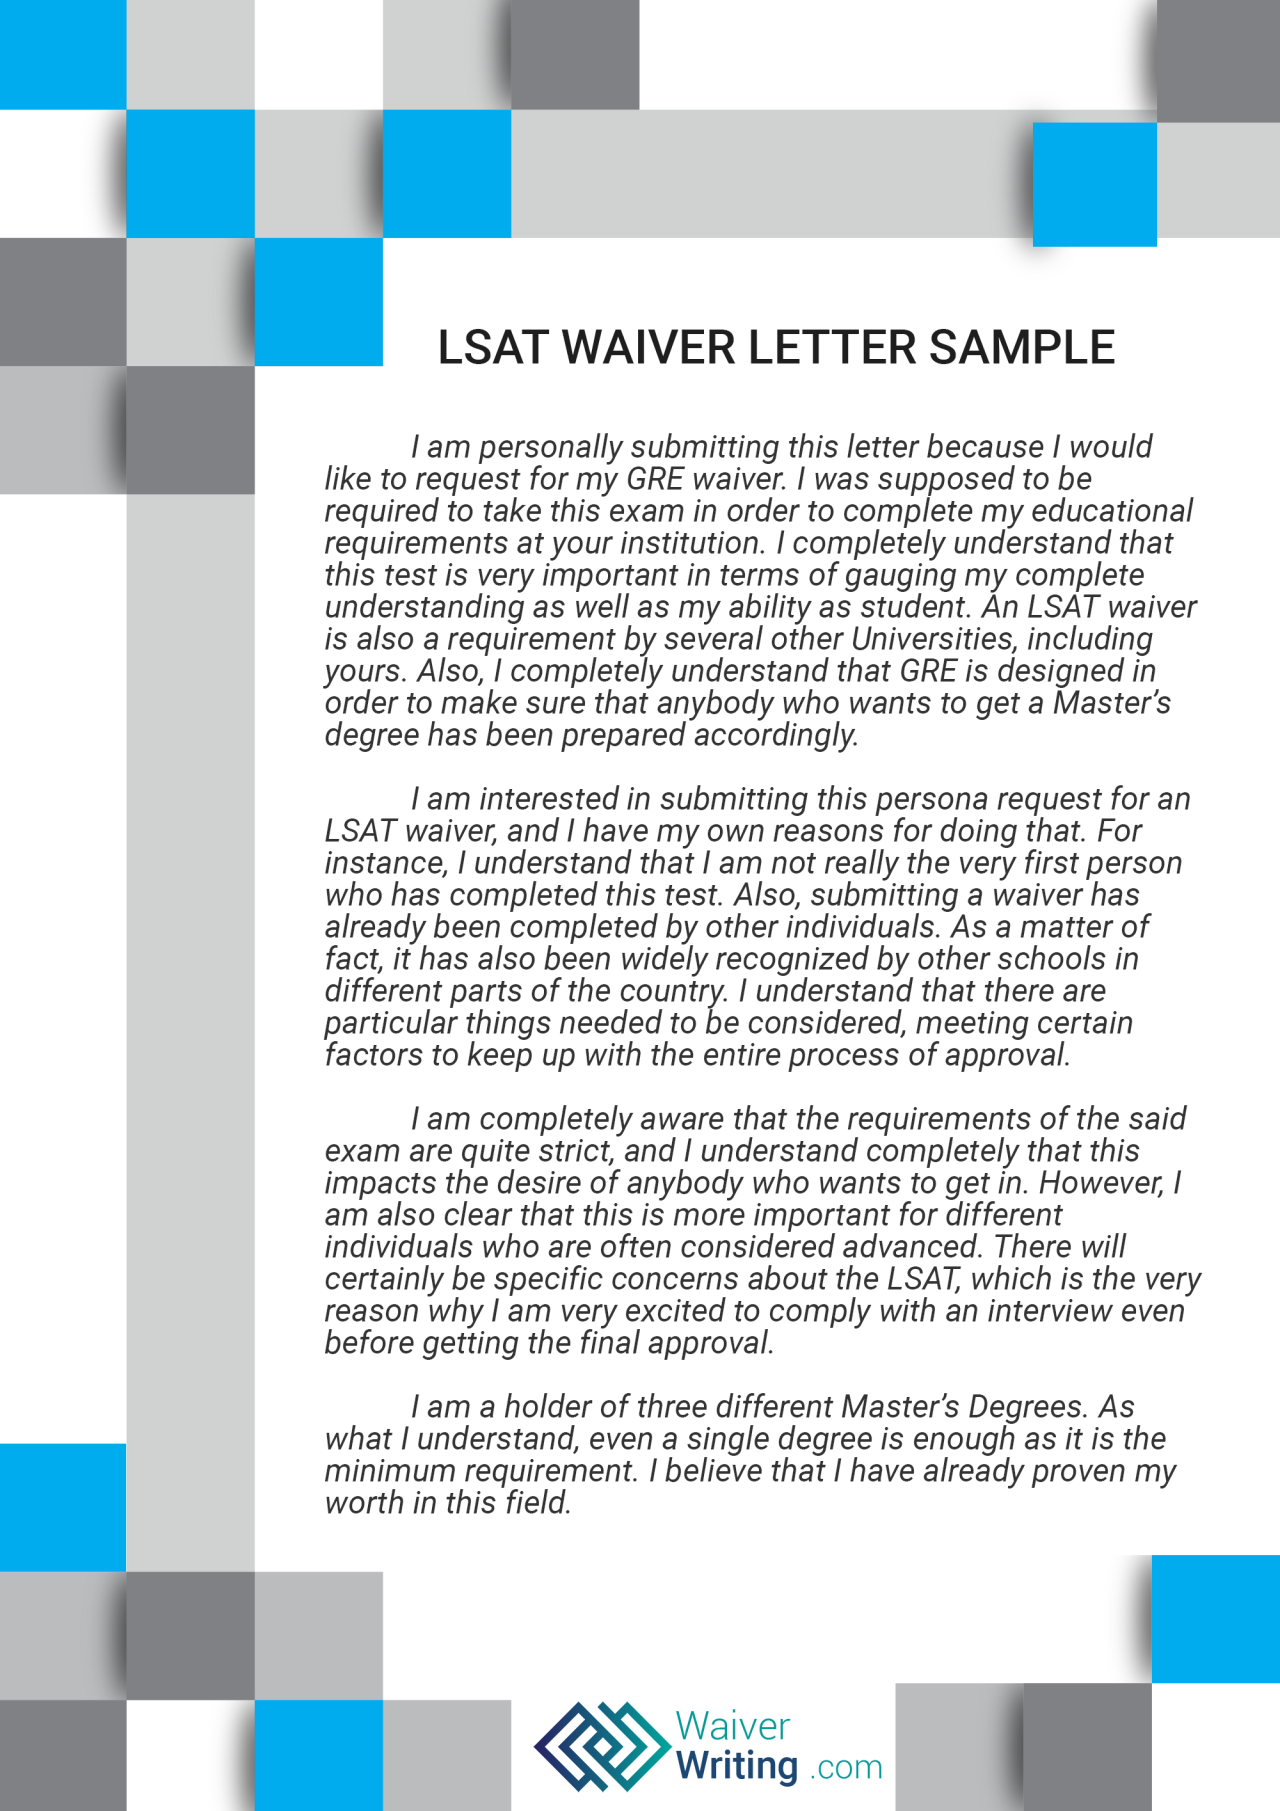 010 Essay Example Tumblr Ode077tgcl1vfim2xo1 1280 Gmat Shocking Sample Waiver Topics Awa Essays Free Download Full